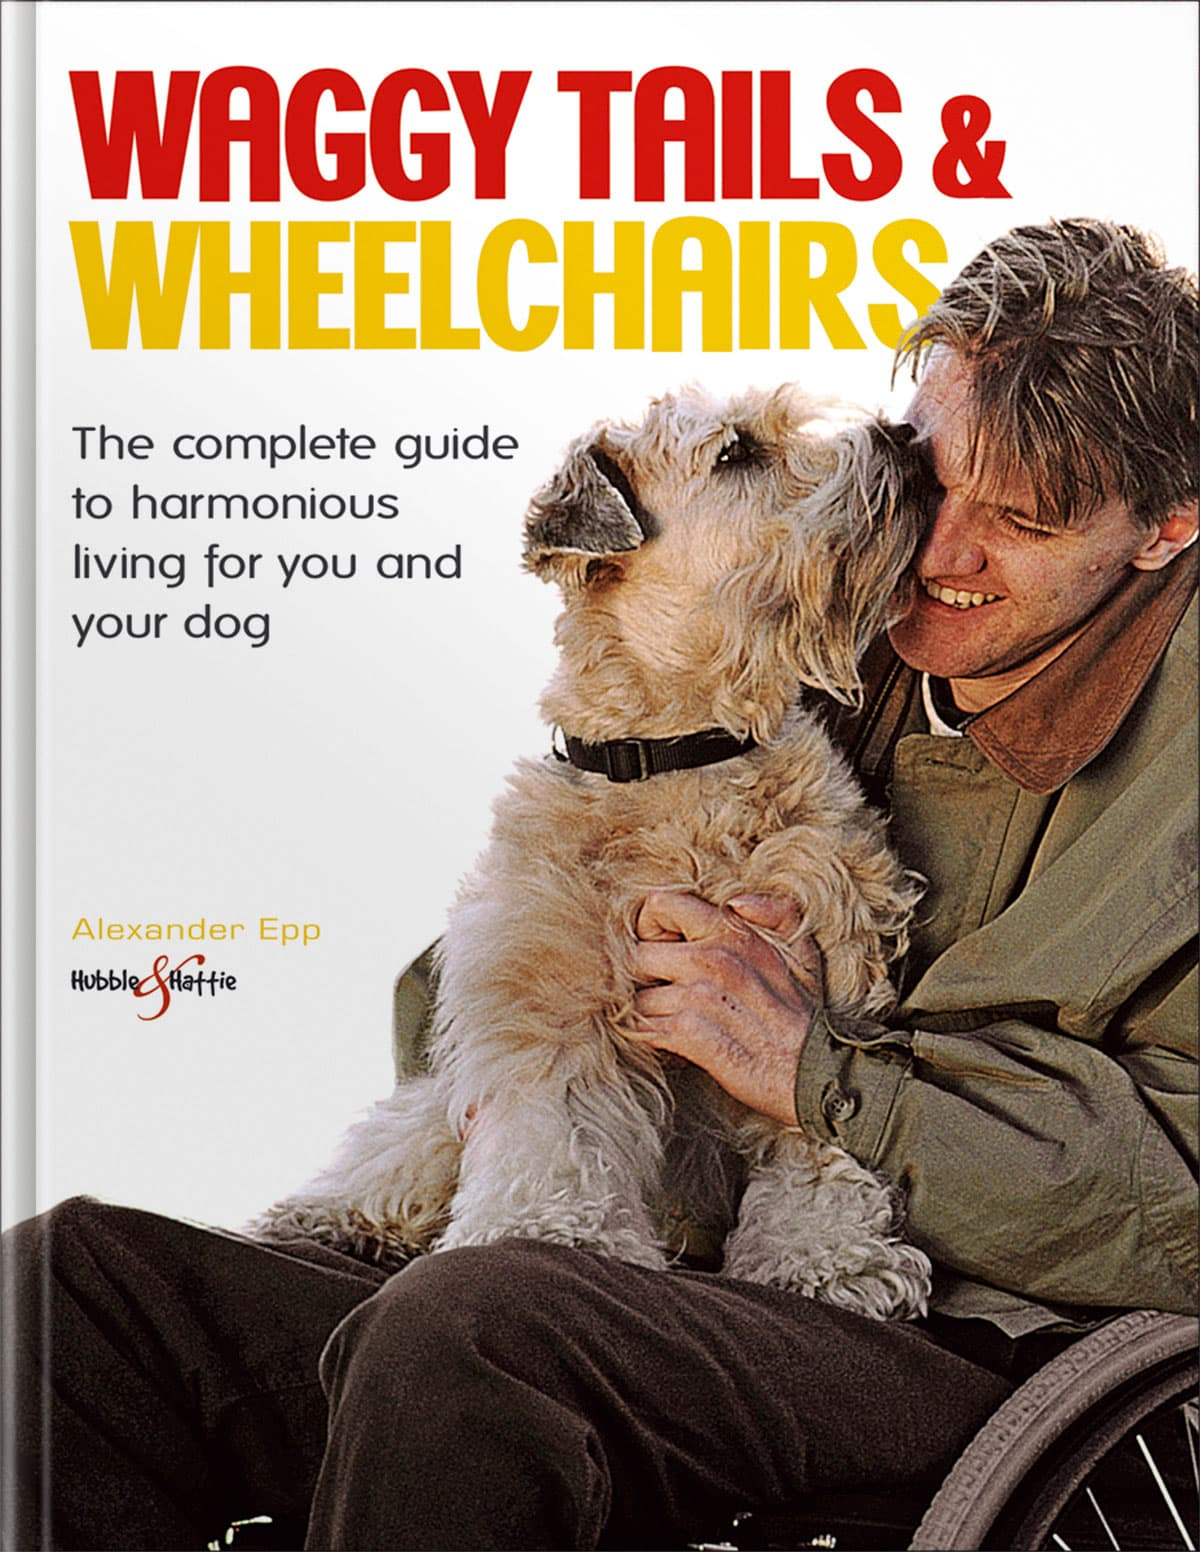 Waggy Tails & Wheelchairs